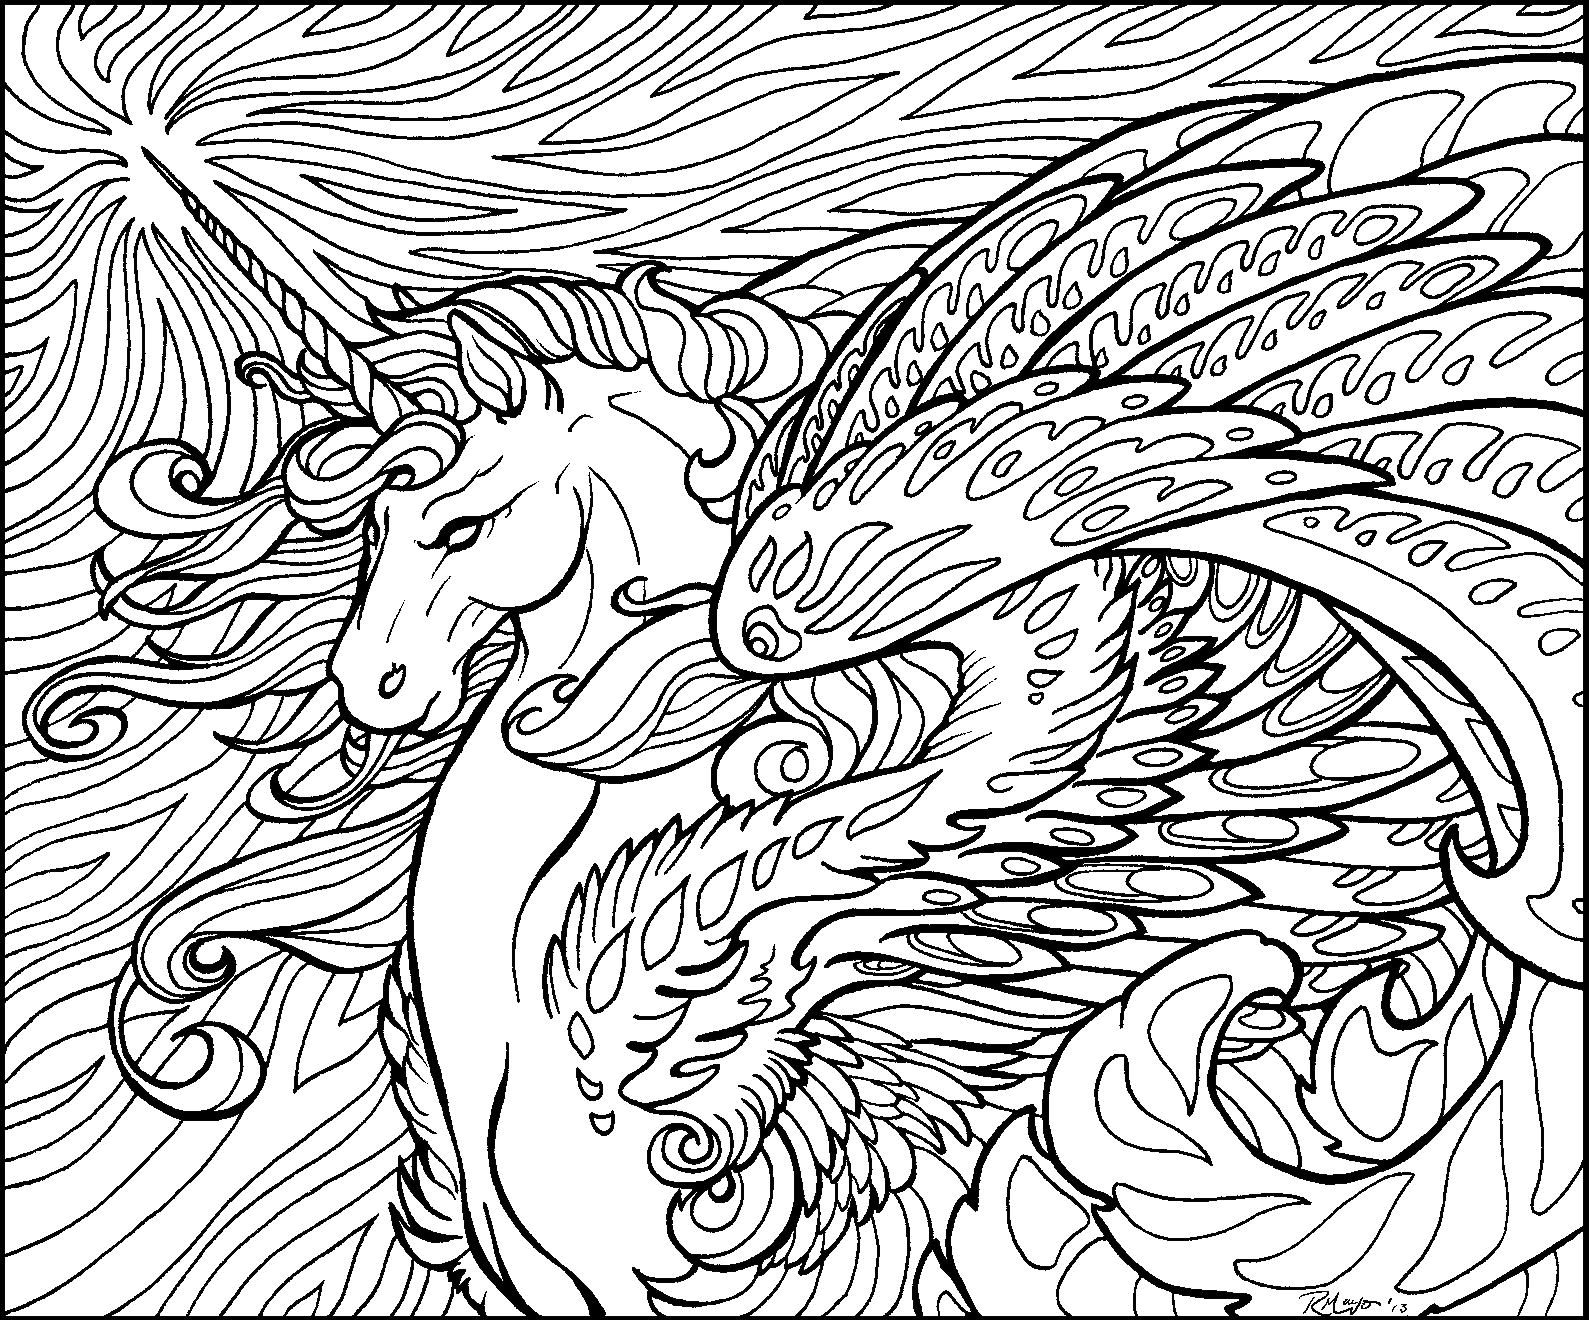 Star Wave Unicorn Lineart By Rachaelm5 Deviantart Com On Deviantart Horse Coloring Pages Unicorn Coloring Pages Dragon Coloring Page